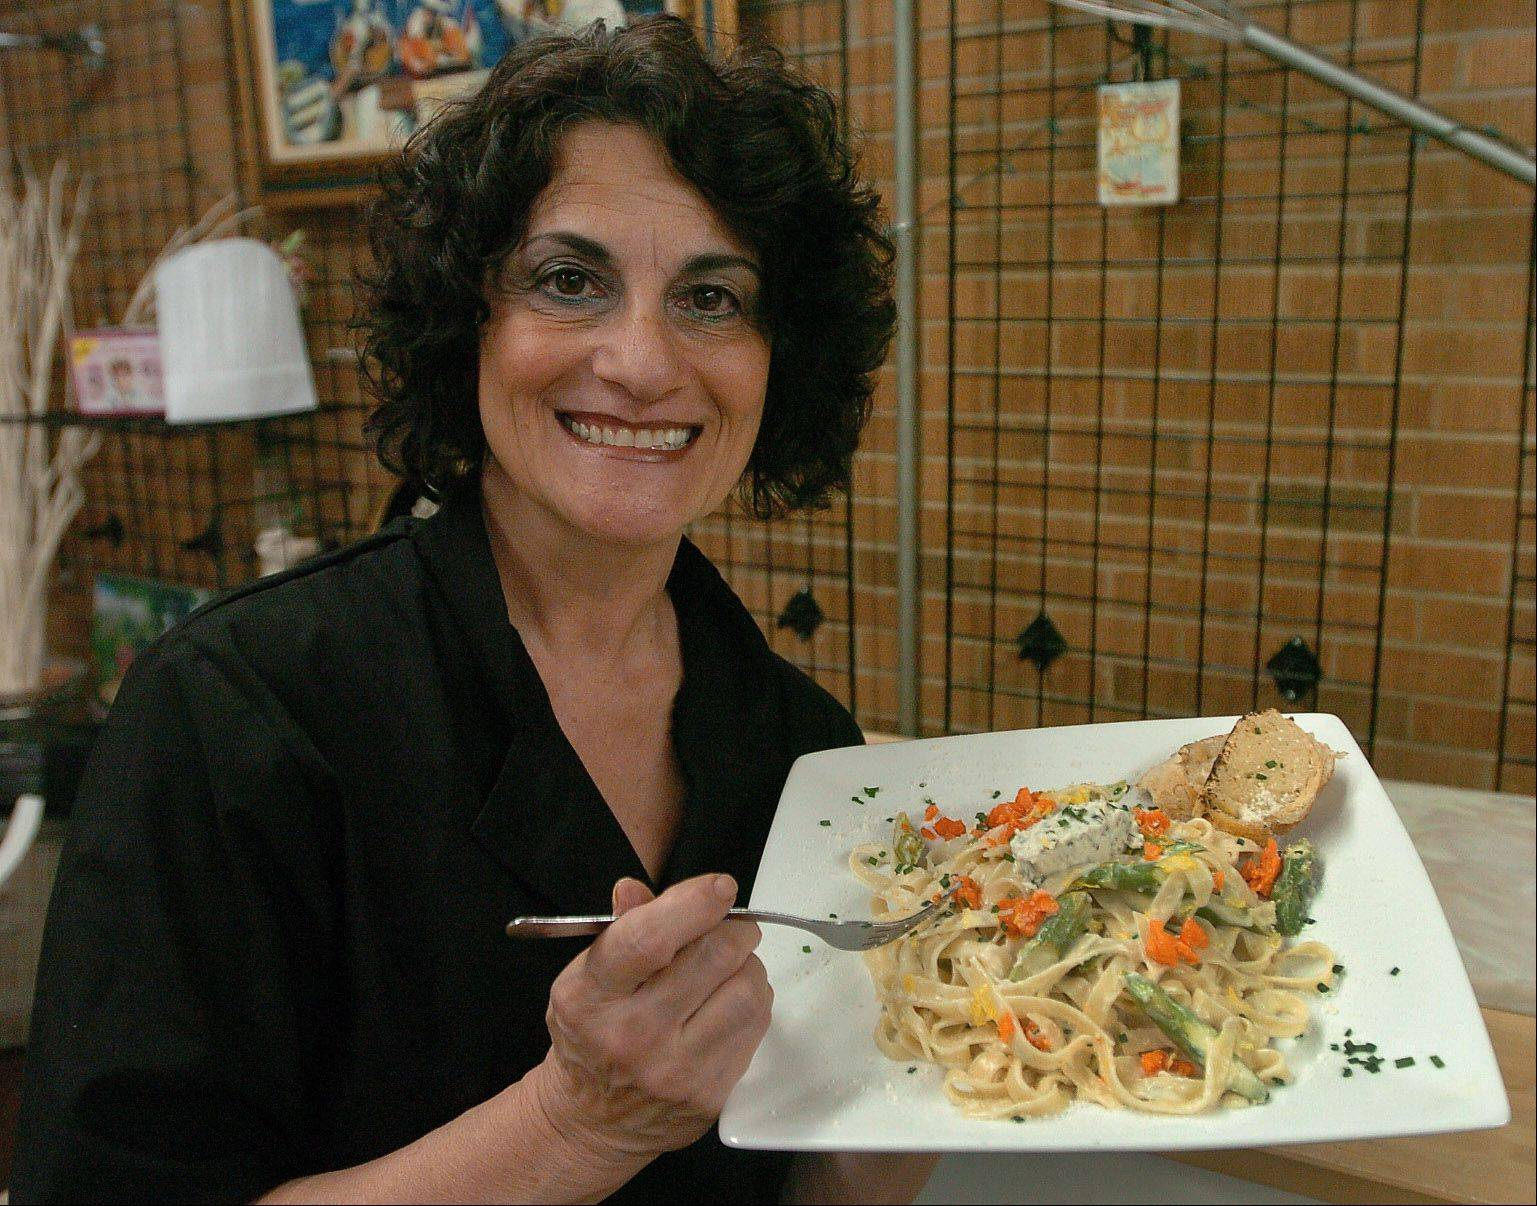 Chef Lucia Biscaglio runs a personal chef and catering service in Arlington Heights and gets much joy from teaching classes.